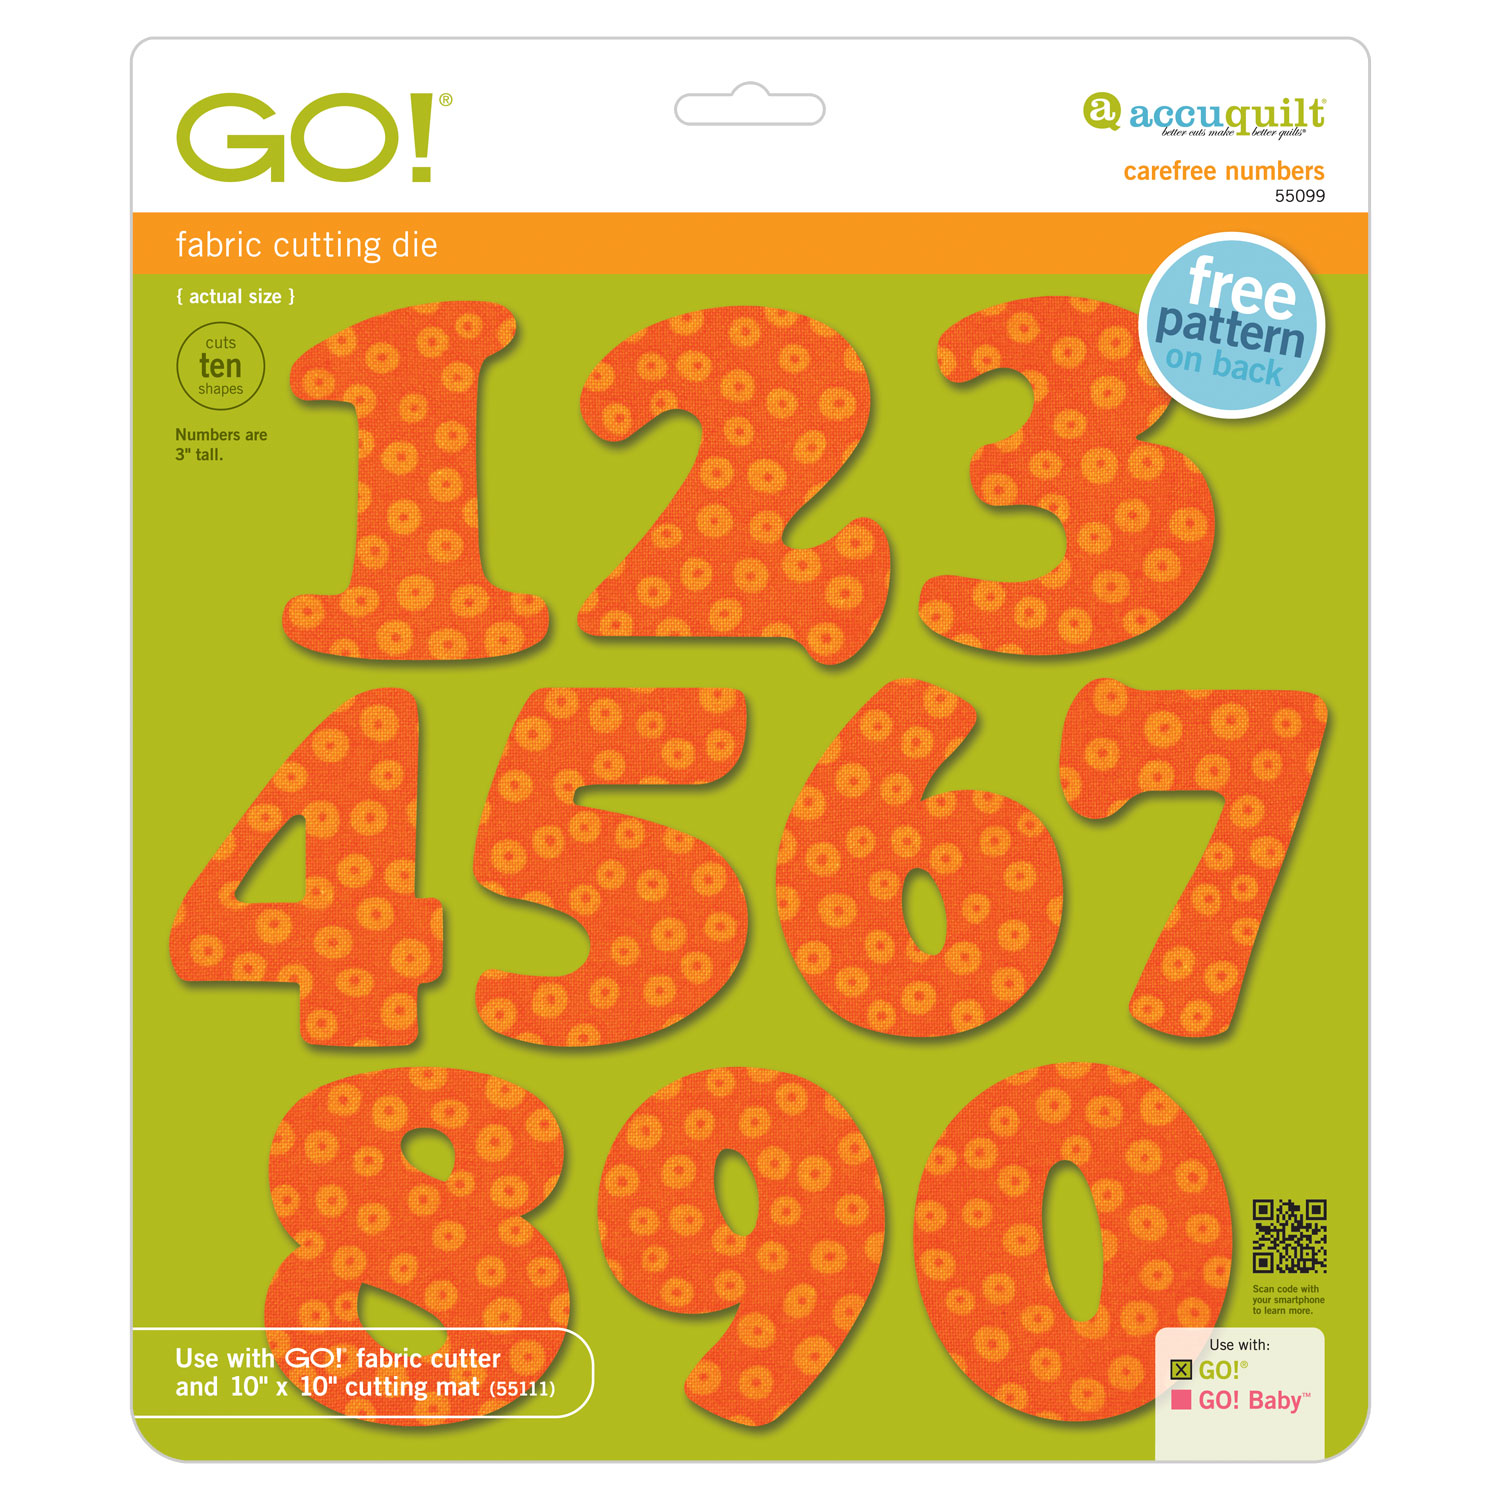 AccuQuilt GO! Carefree 3 Numbers